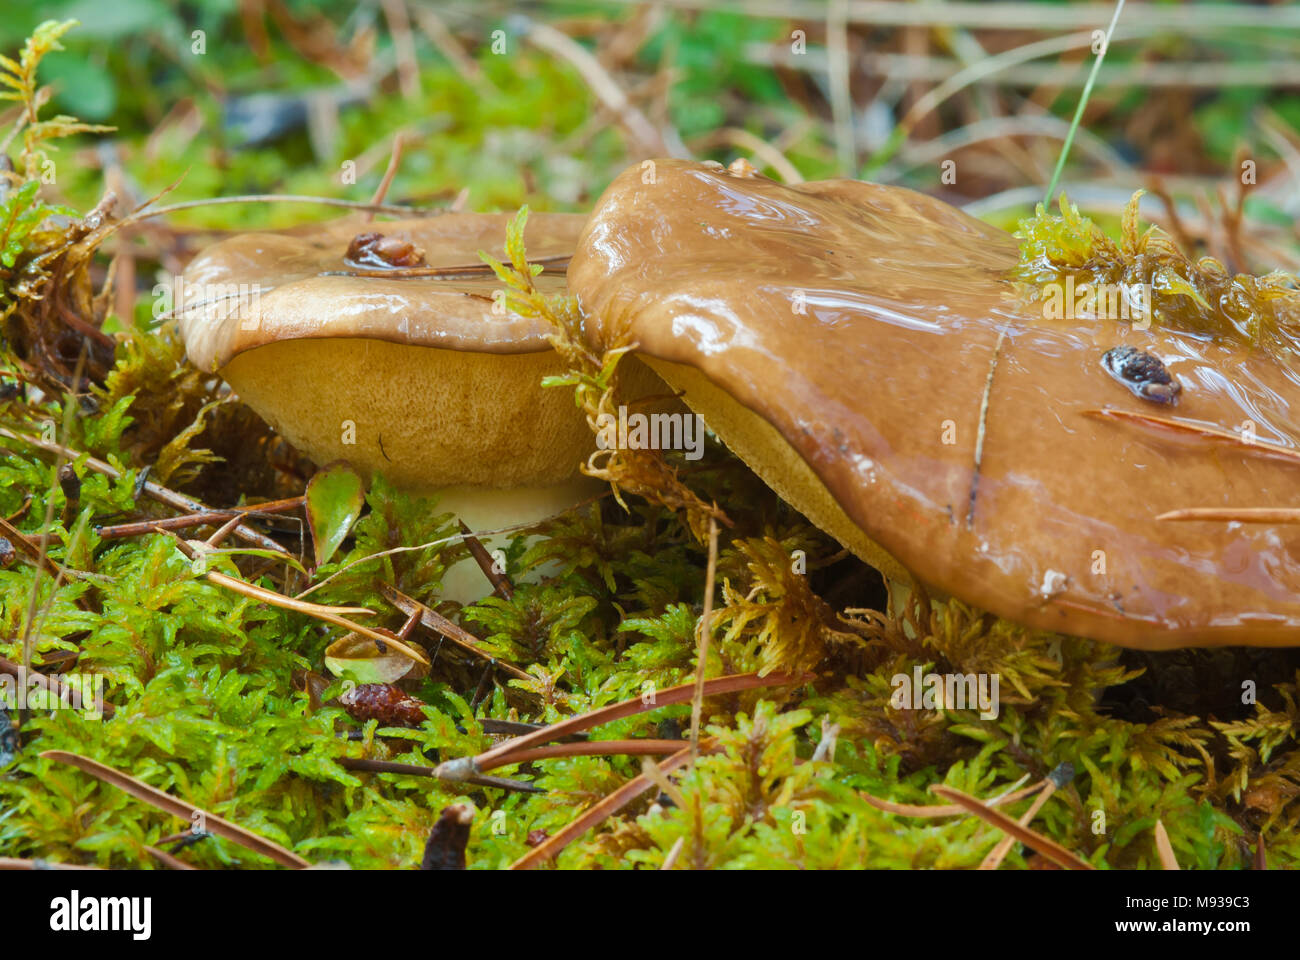 Short-stalked bolete, Suillus brevipes, growing among moss in Jasper National Park in Alberta, Canada. - Stock Image